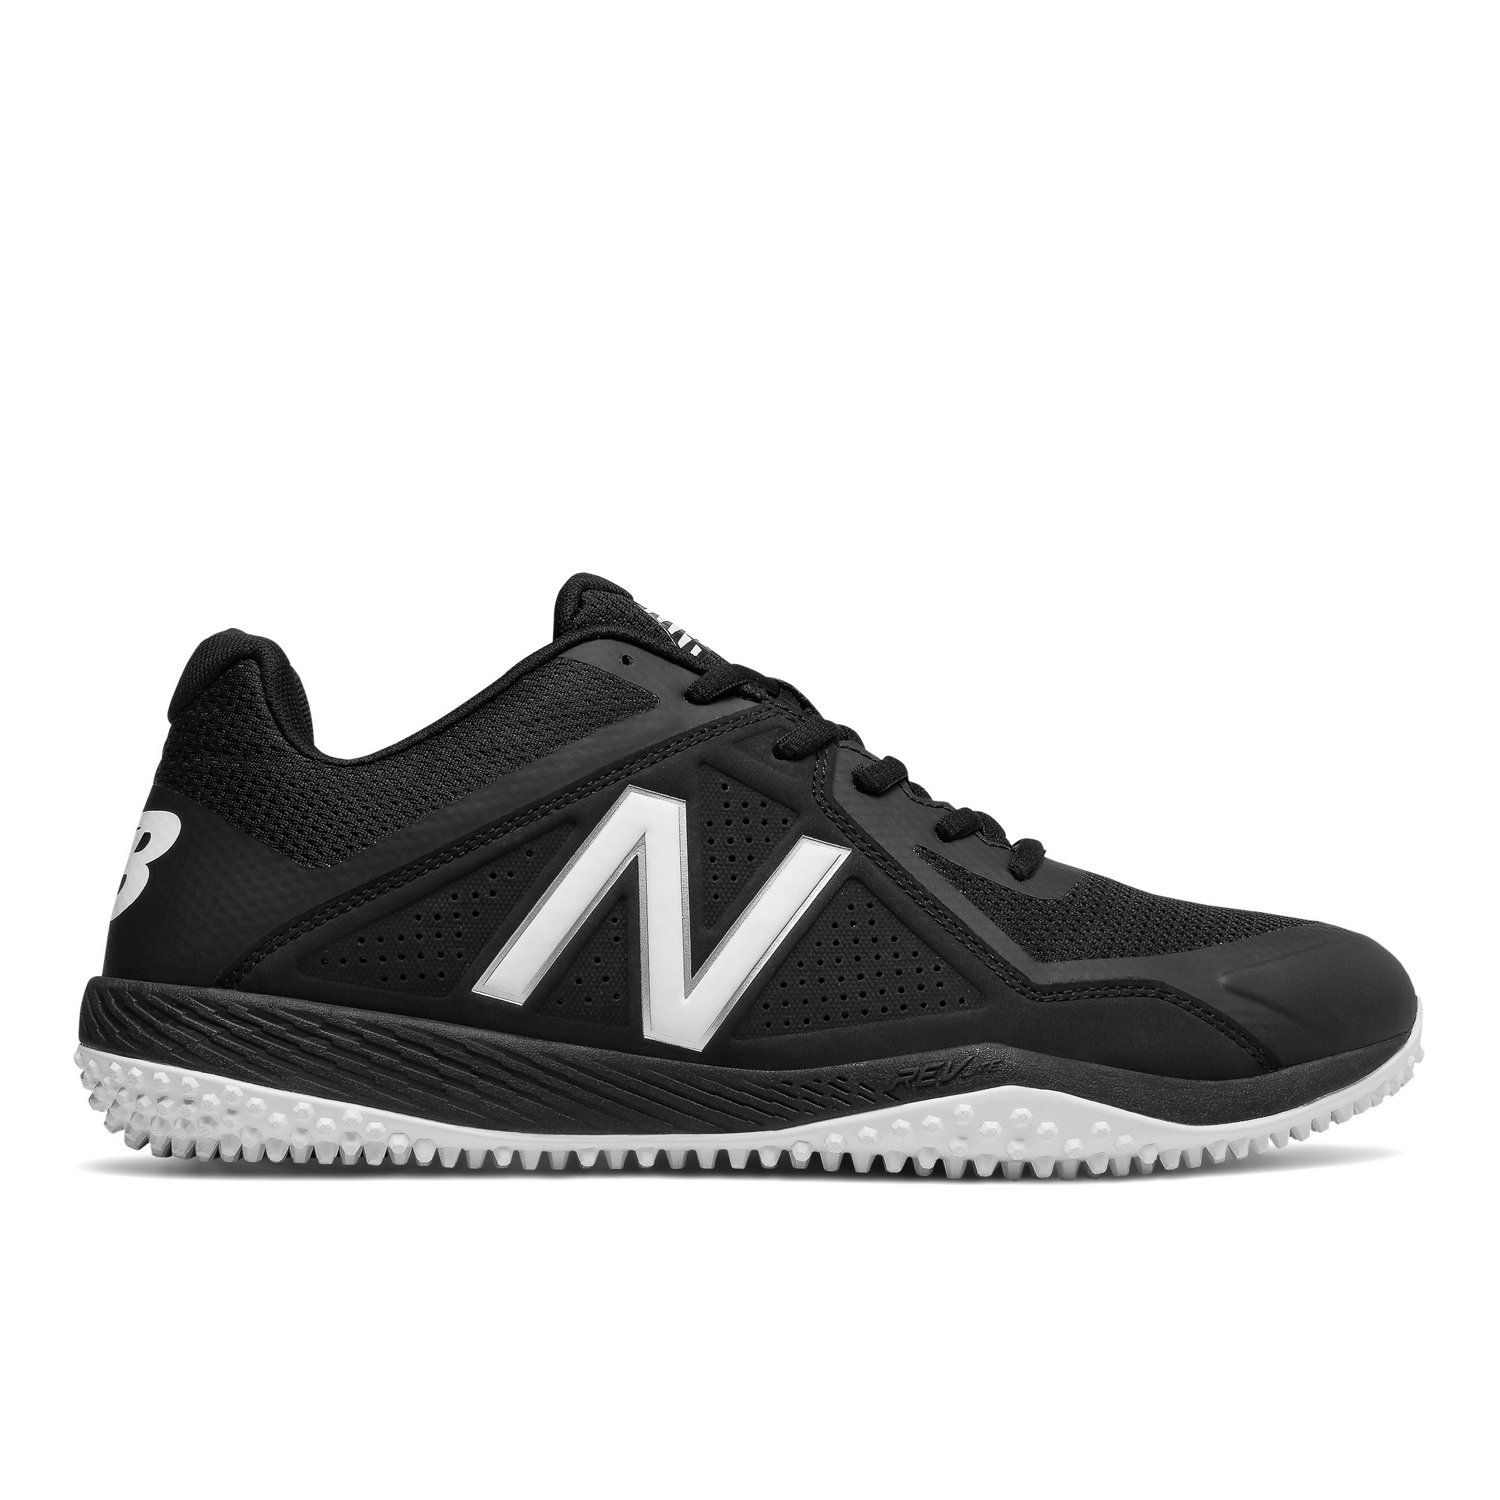 Display product reviews for New Balance Men s 4040v4 Turf Low Baseball  Cleats 3912b5b8a48